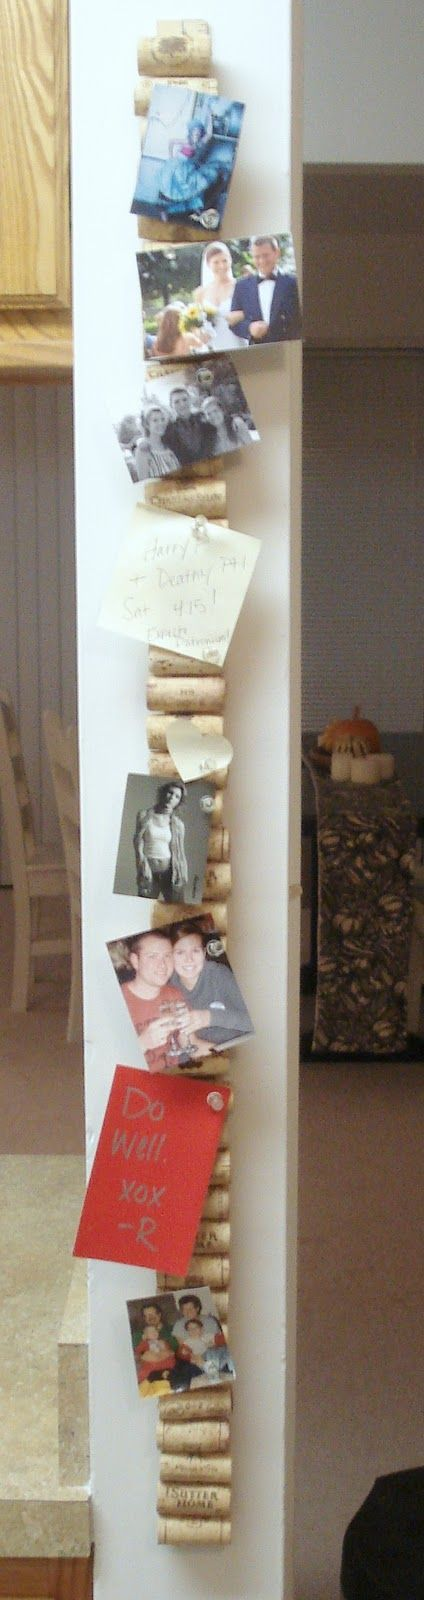 Corks on a yard stick and you get a vertical cork board